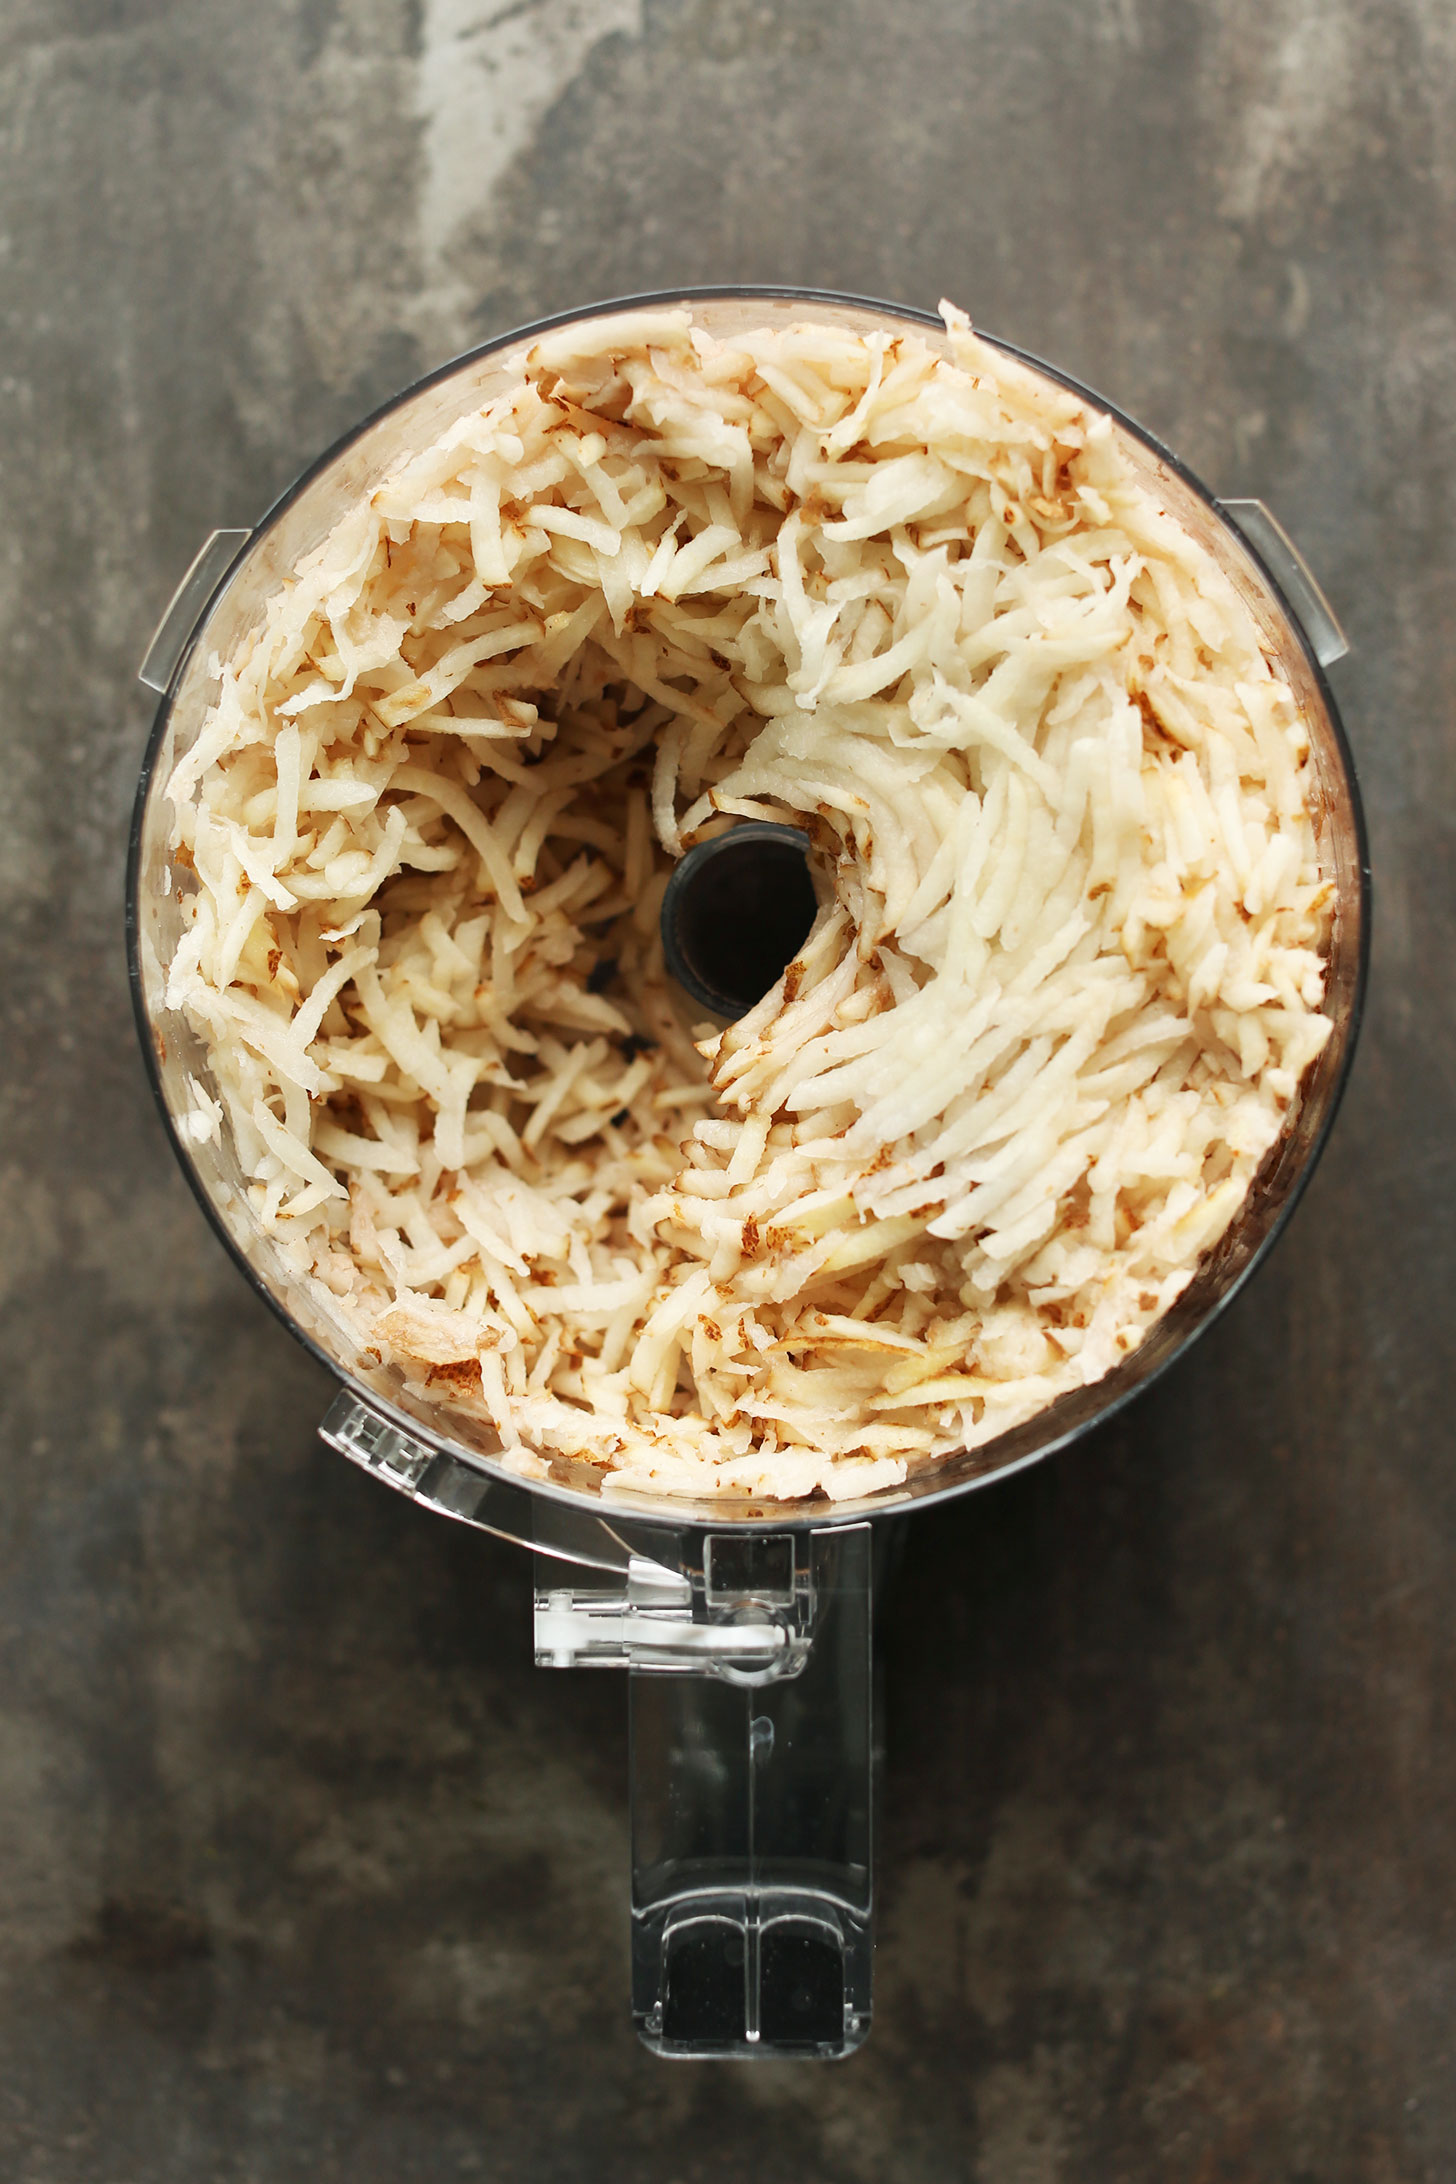 Food processor with grated potatoes for making into delicious crispy hashbrowns